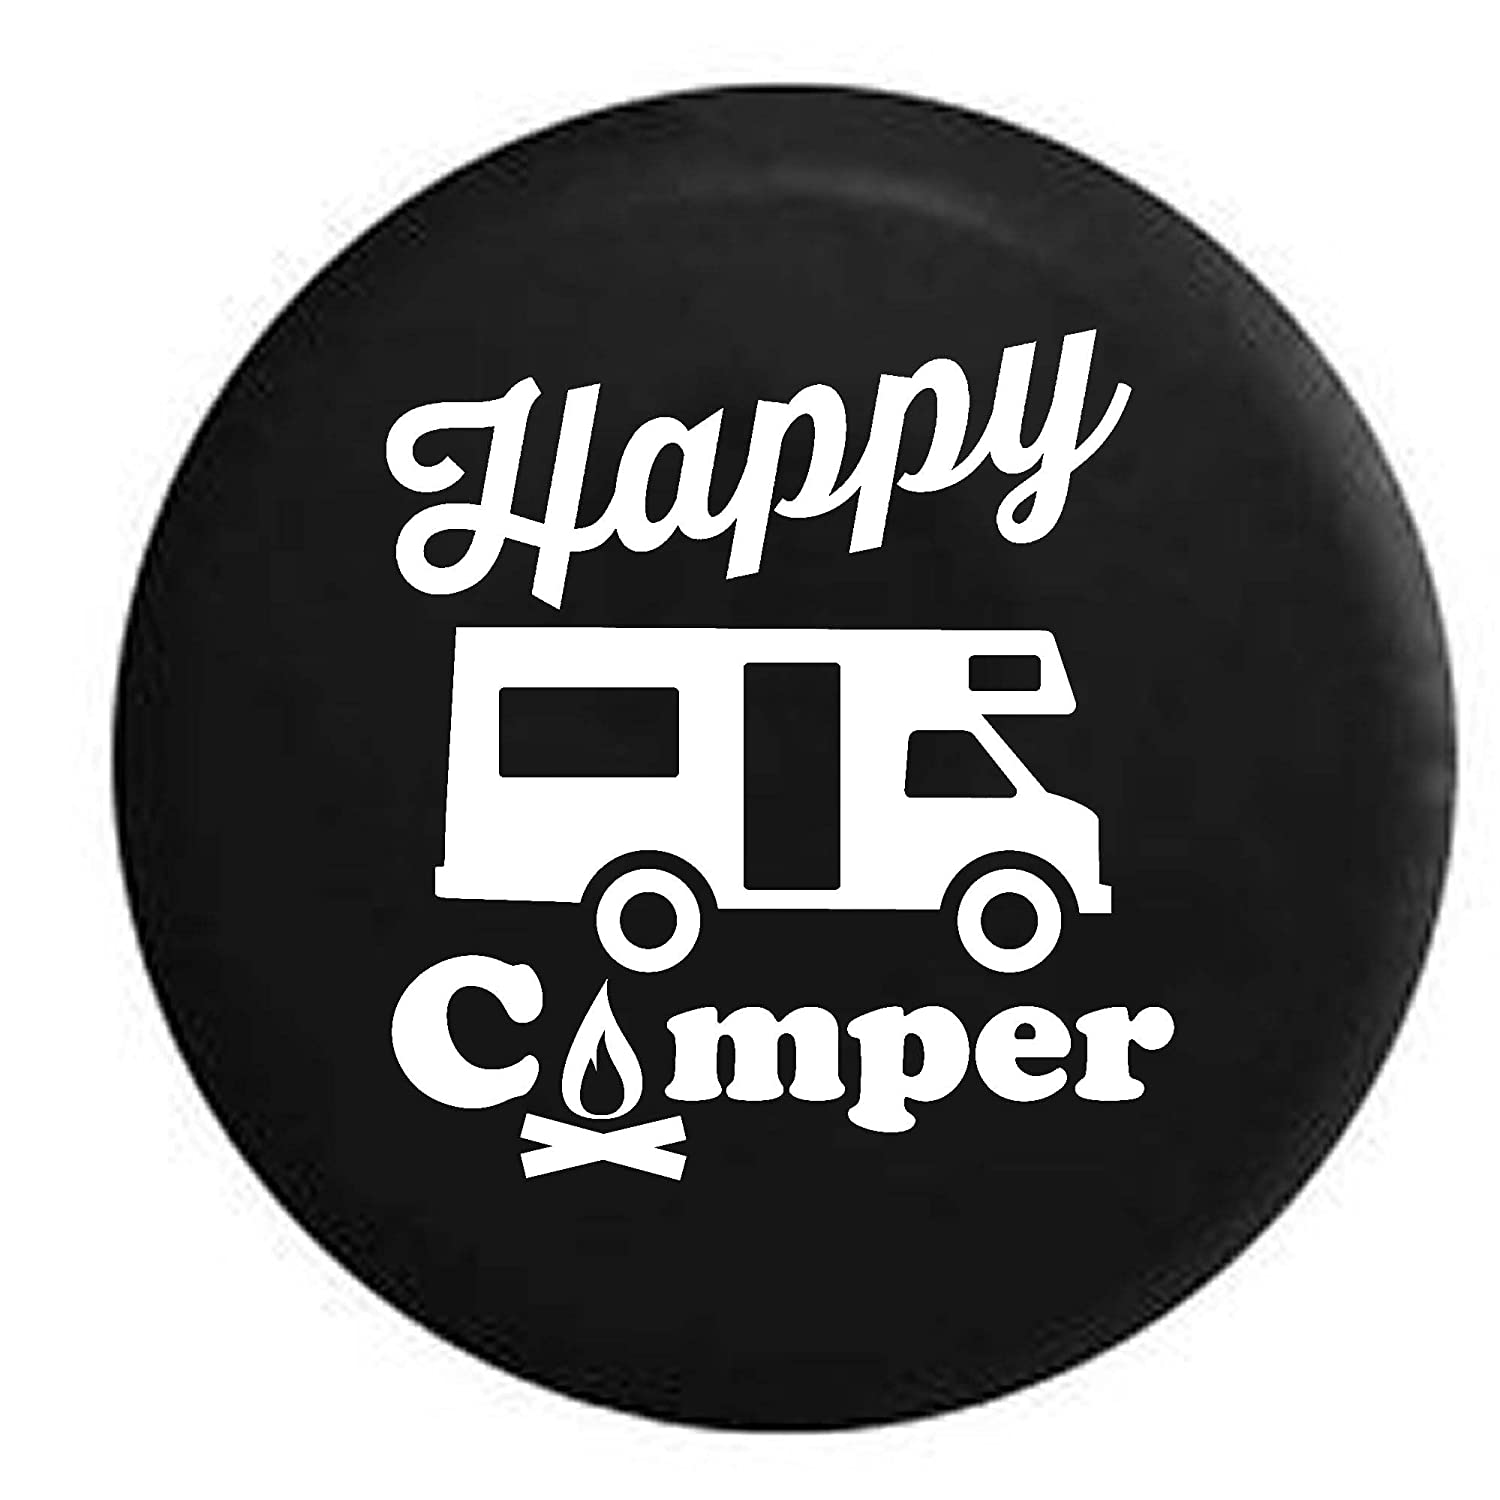 Pike Happy Camper Camp Fire Recreational Vehicle Trailer RV Spare Tire Cover OEM Vinyl Black 30-31 in